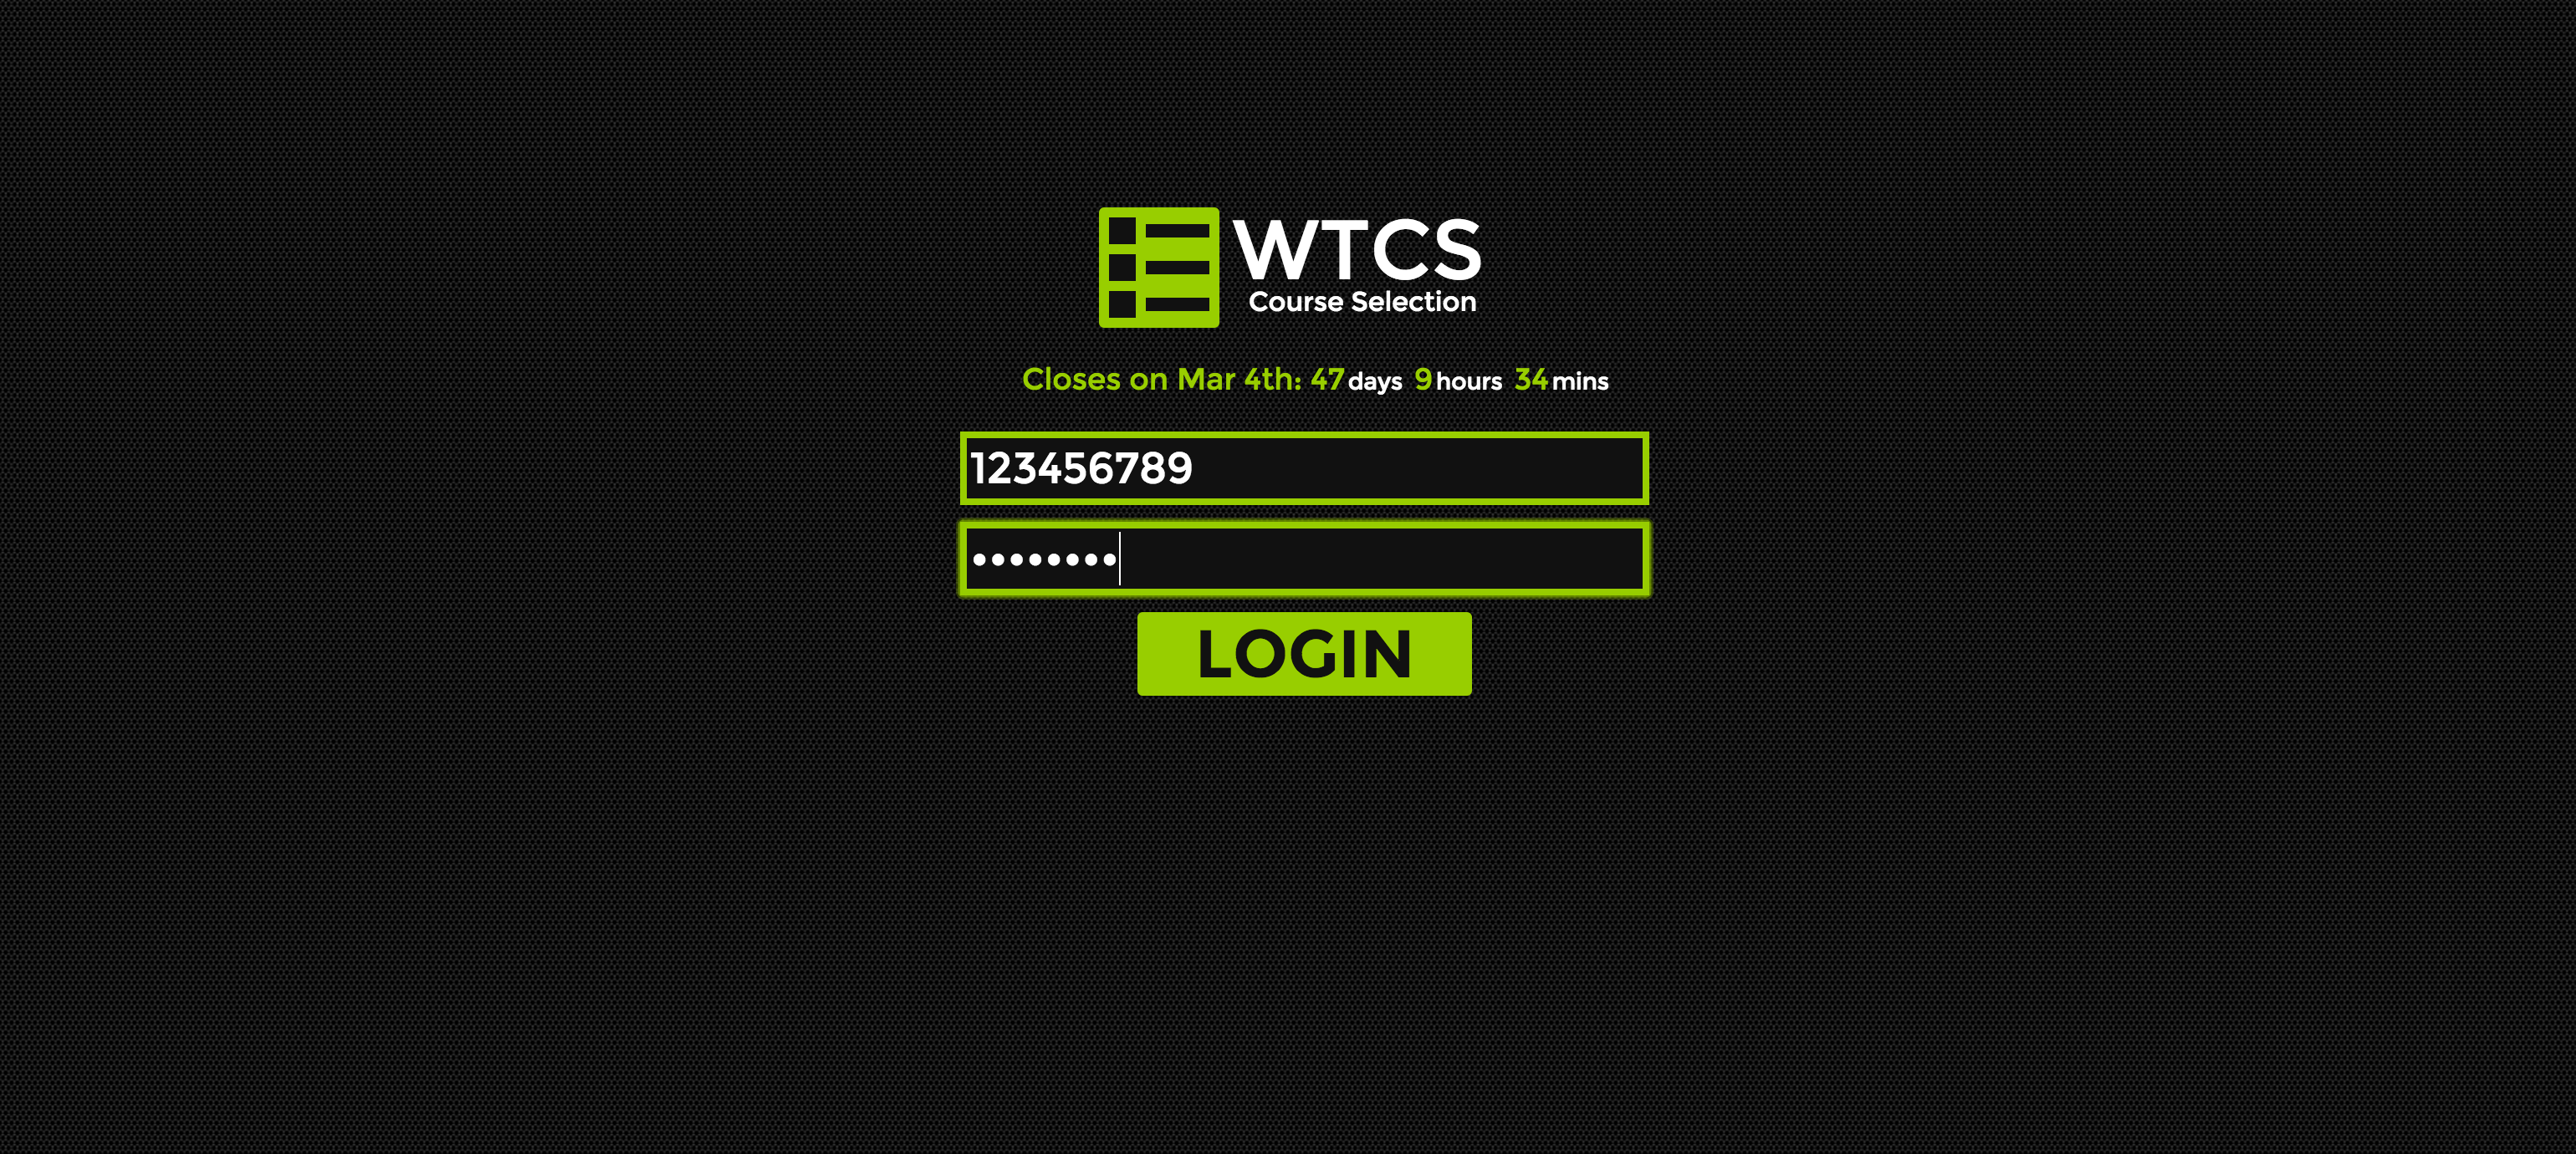 the login page